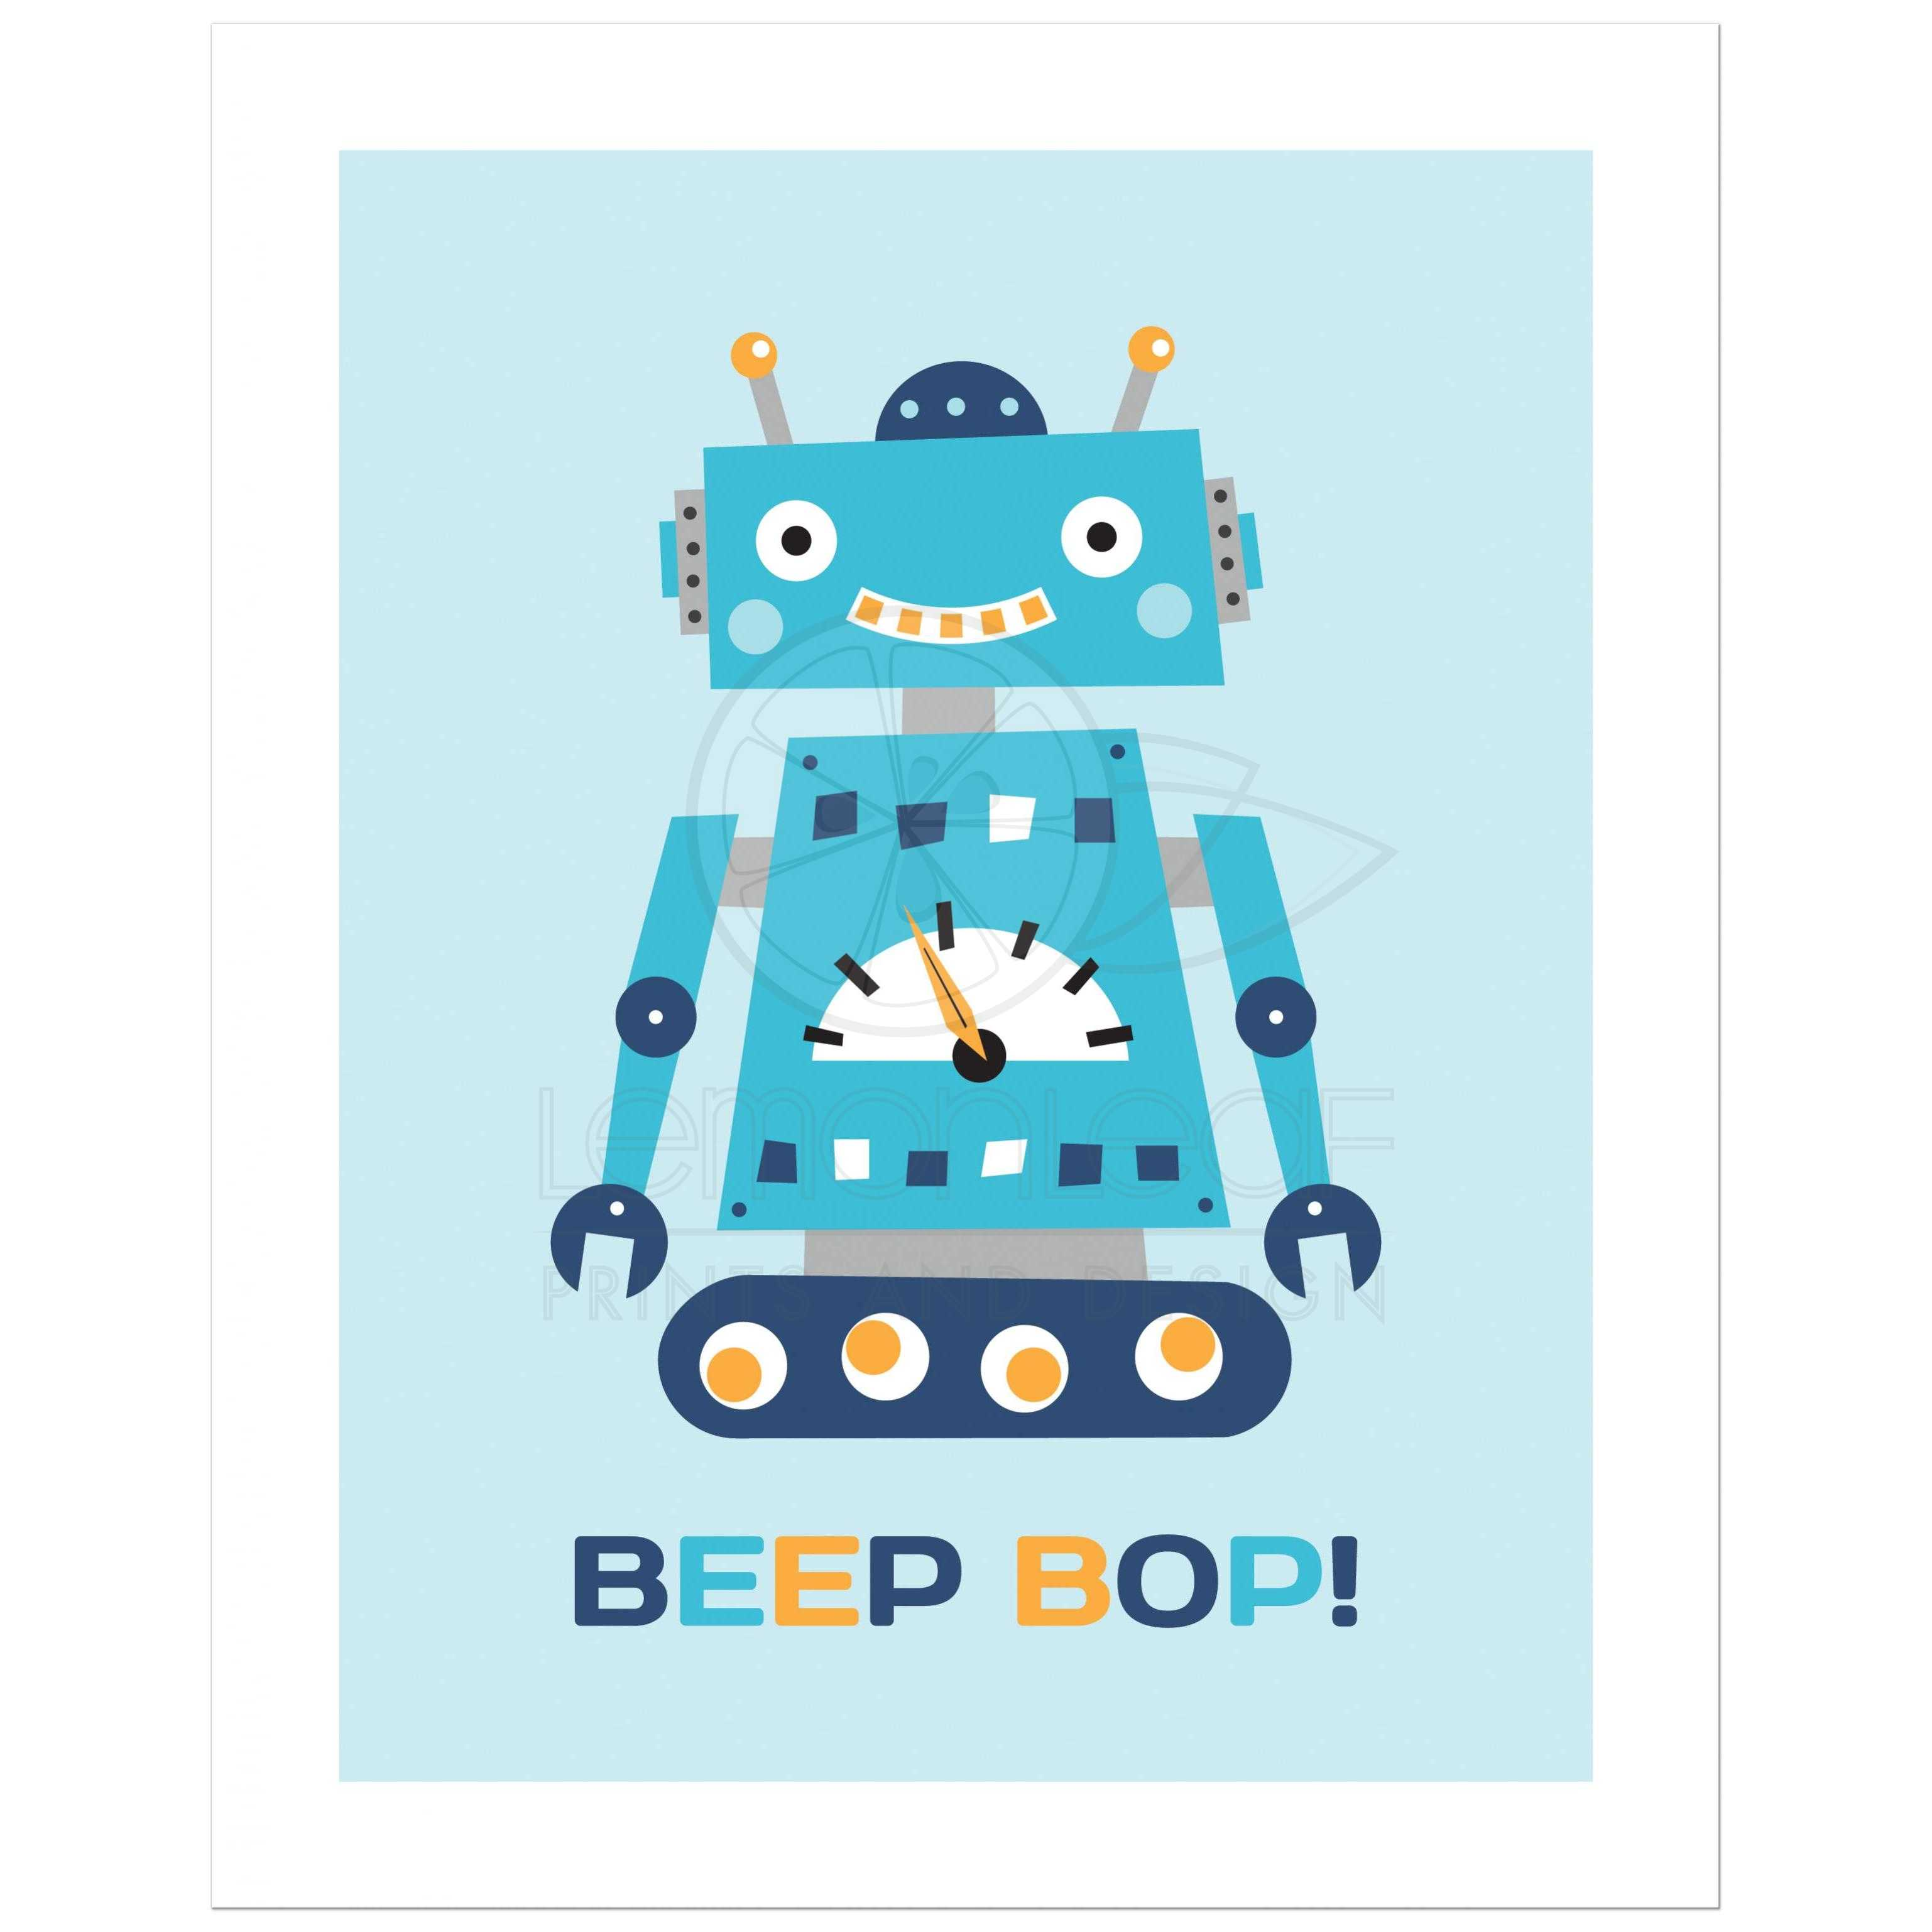 Retro Wall Stickers Retro Robot Nursery Wall Art Print With Text Quot Beep Bop Quot